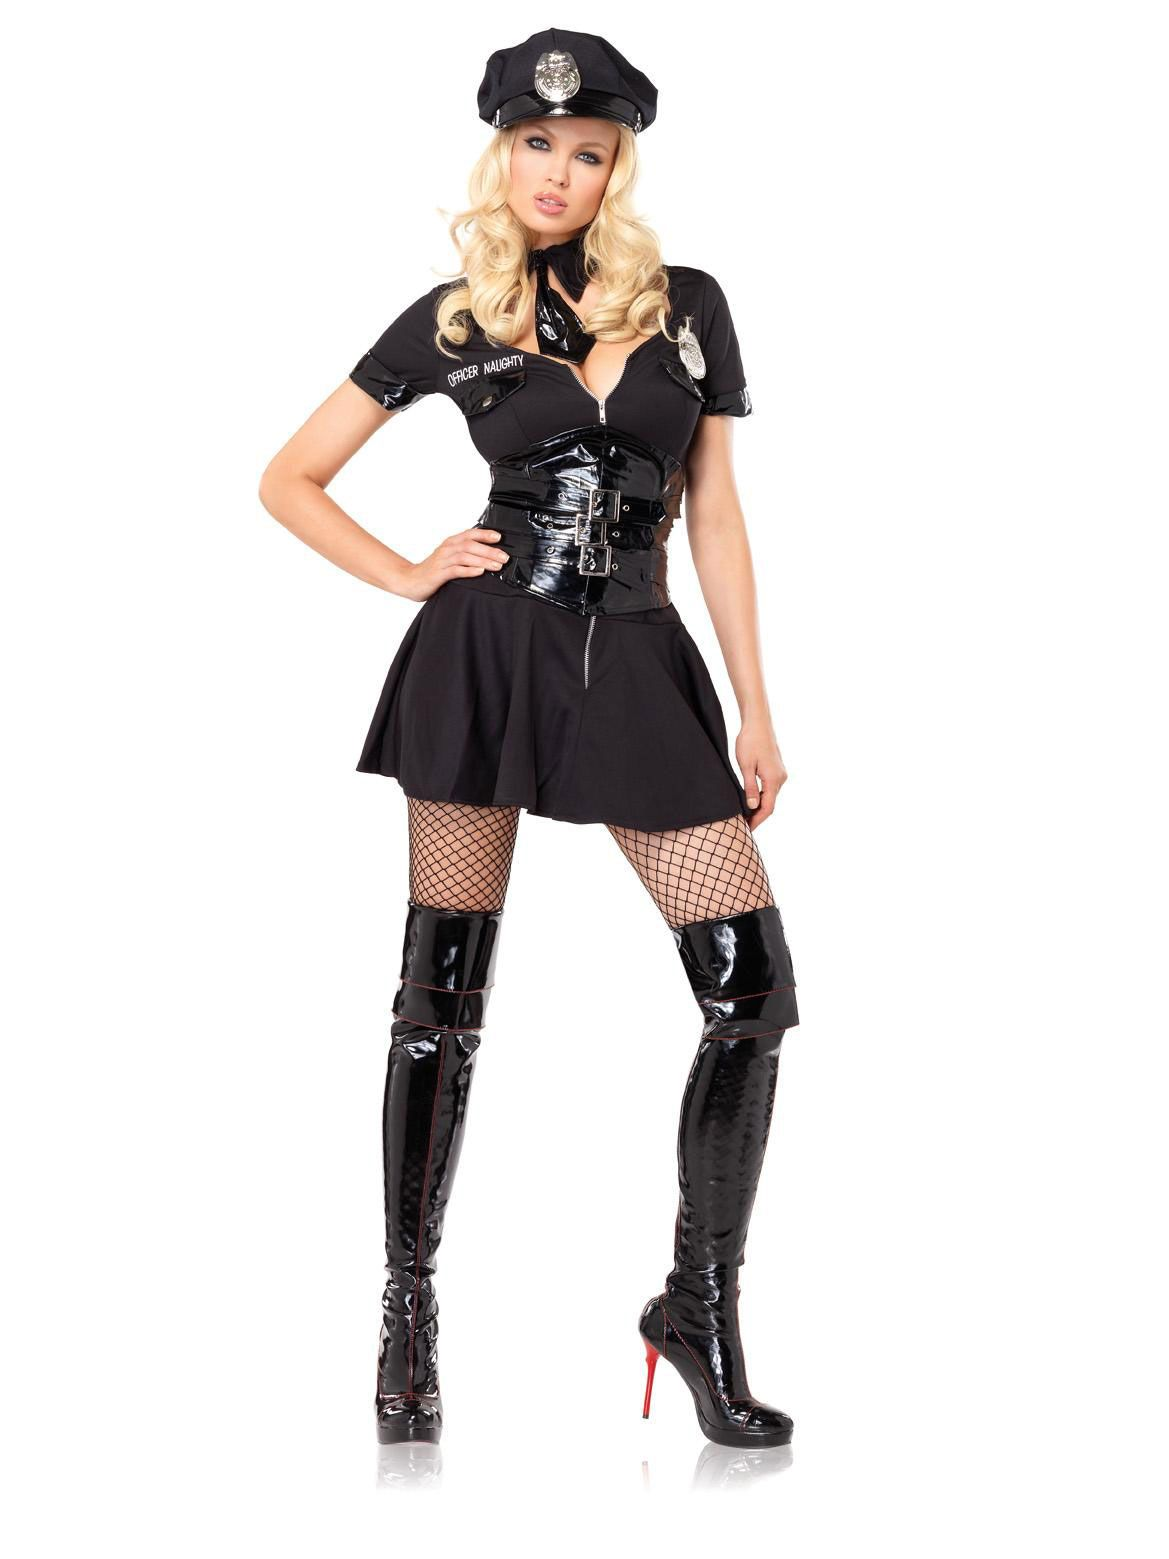 ed0c6b0abcb Police officer 4pc Officer Naughty costume includes dress tie hat ...